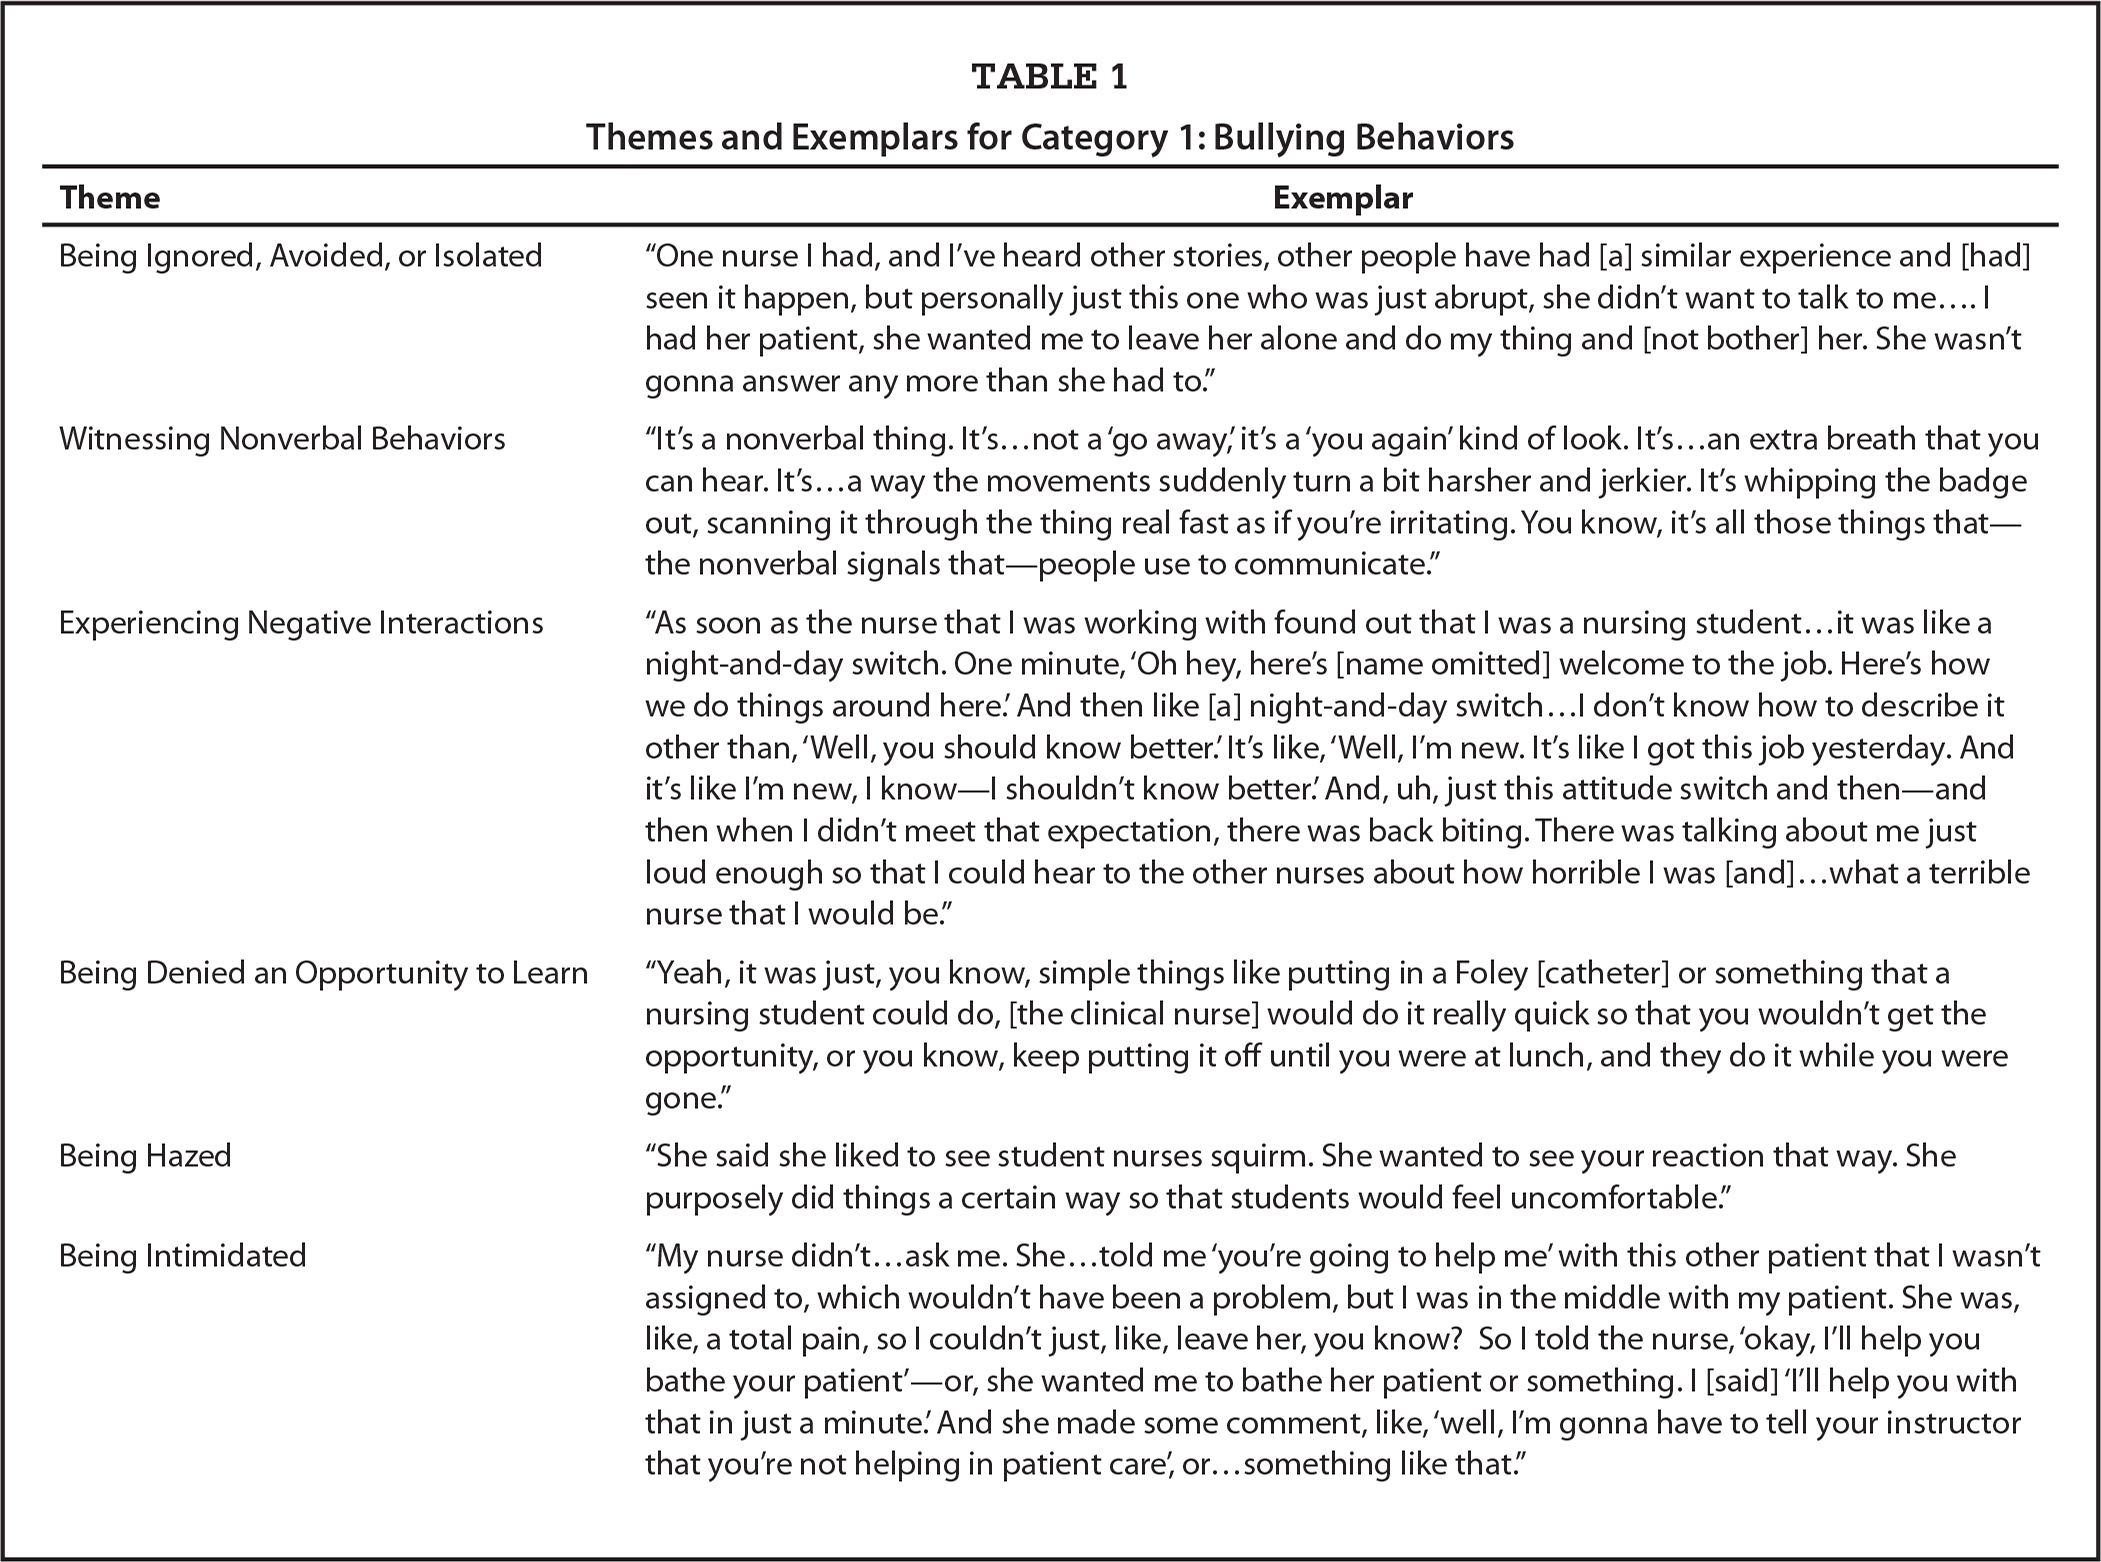 Themes and Exemplars for Category 1: Bullying Behaviors